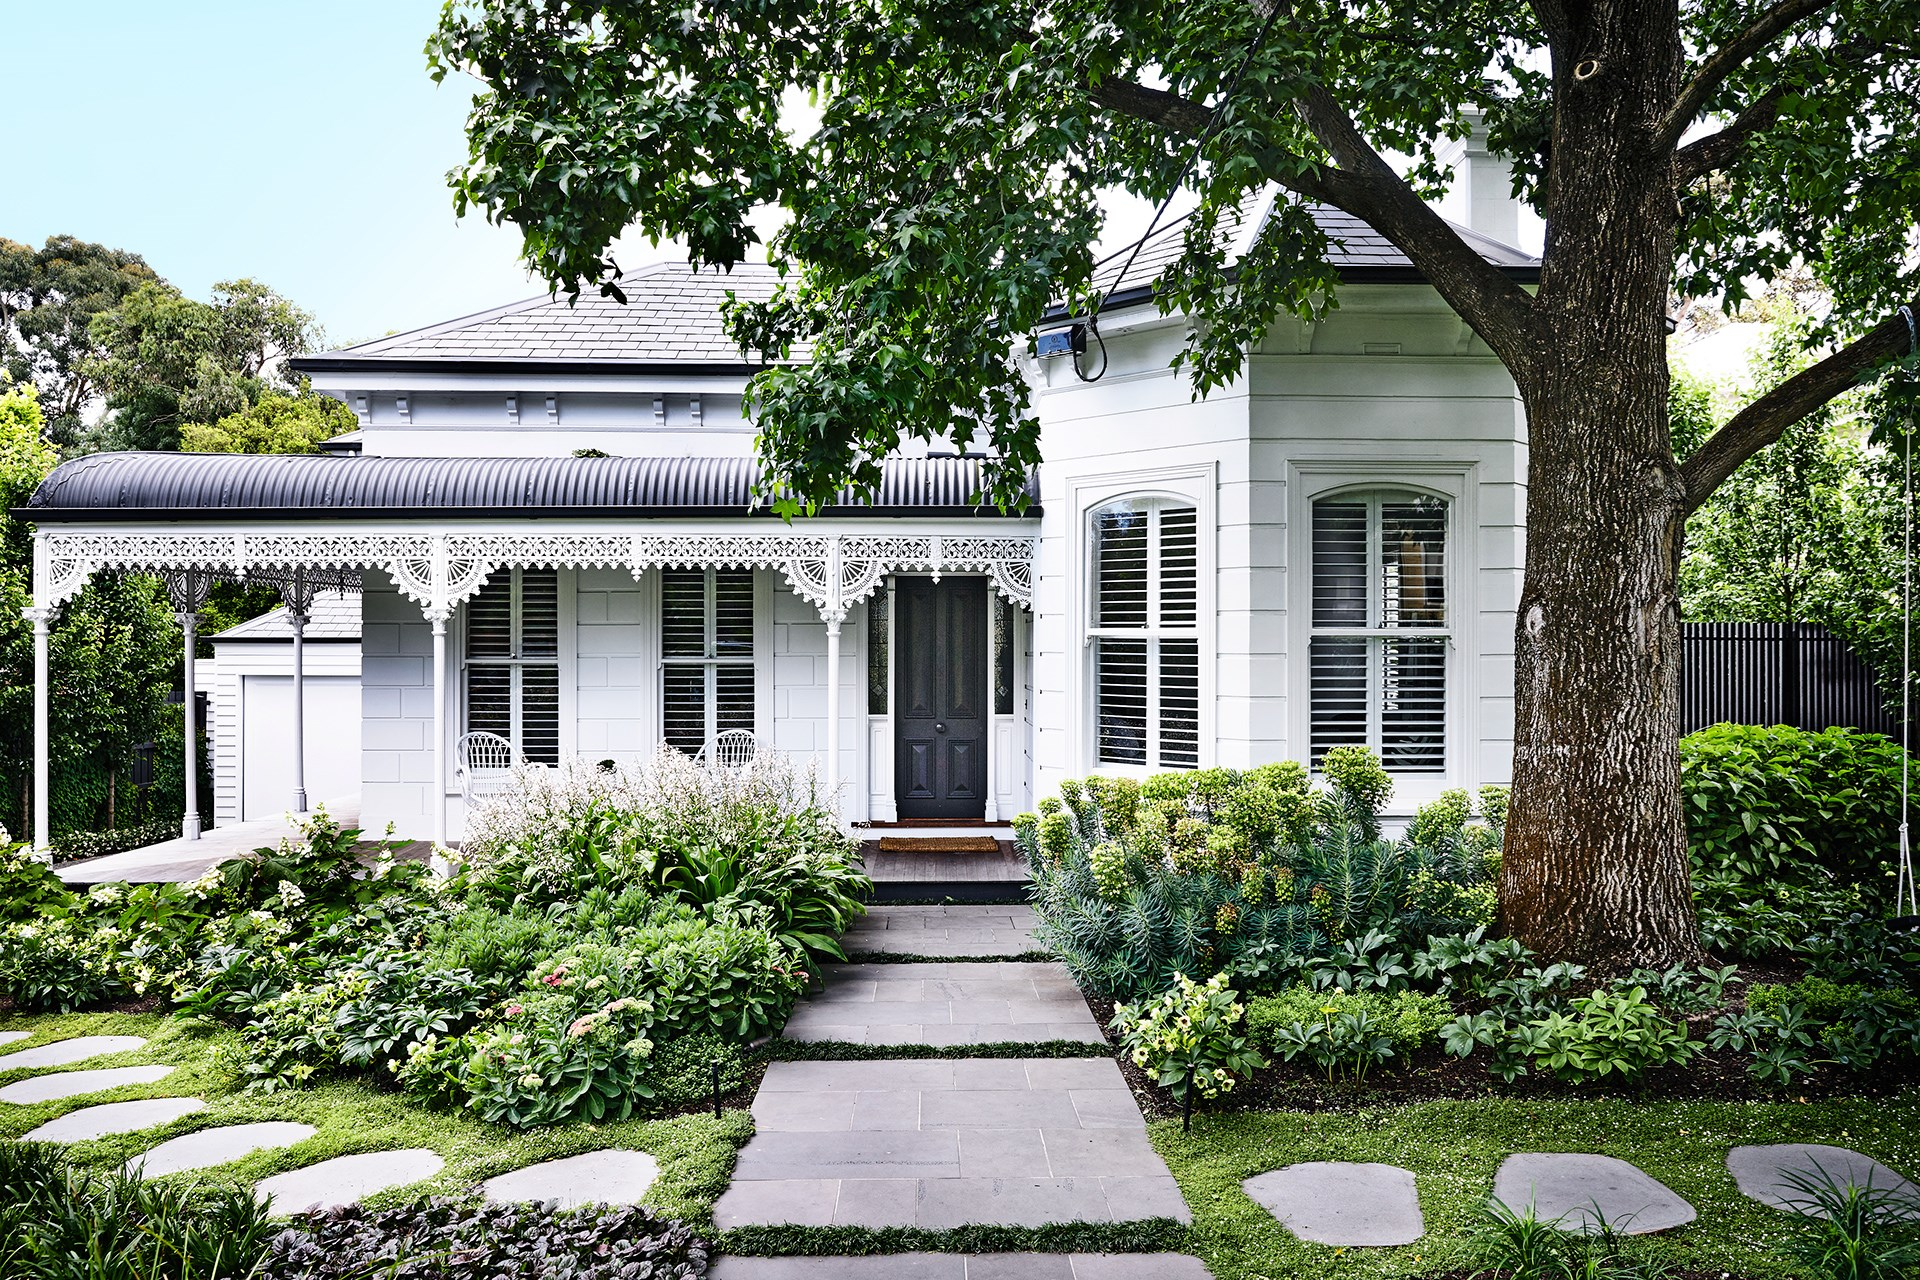 """This garden is so abundant and established it looks as though it's been the life-long companion to the Victorian-era weatherboard home it surrounds. In fact, it's a recent development, [installed in tandem with the home's renovation two years ago](http://www.homestolove.com.au/a-garden-of-contrasts-that-works-harmoniously-3105